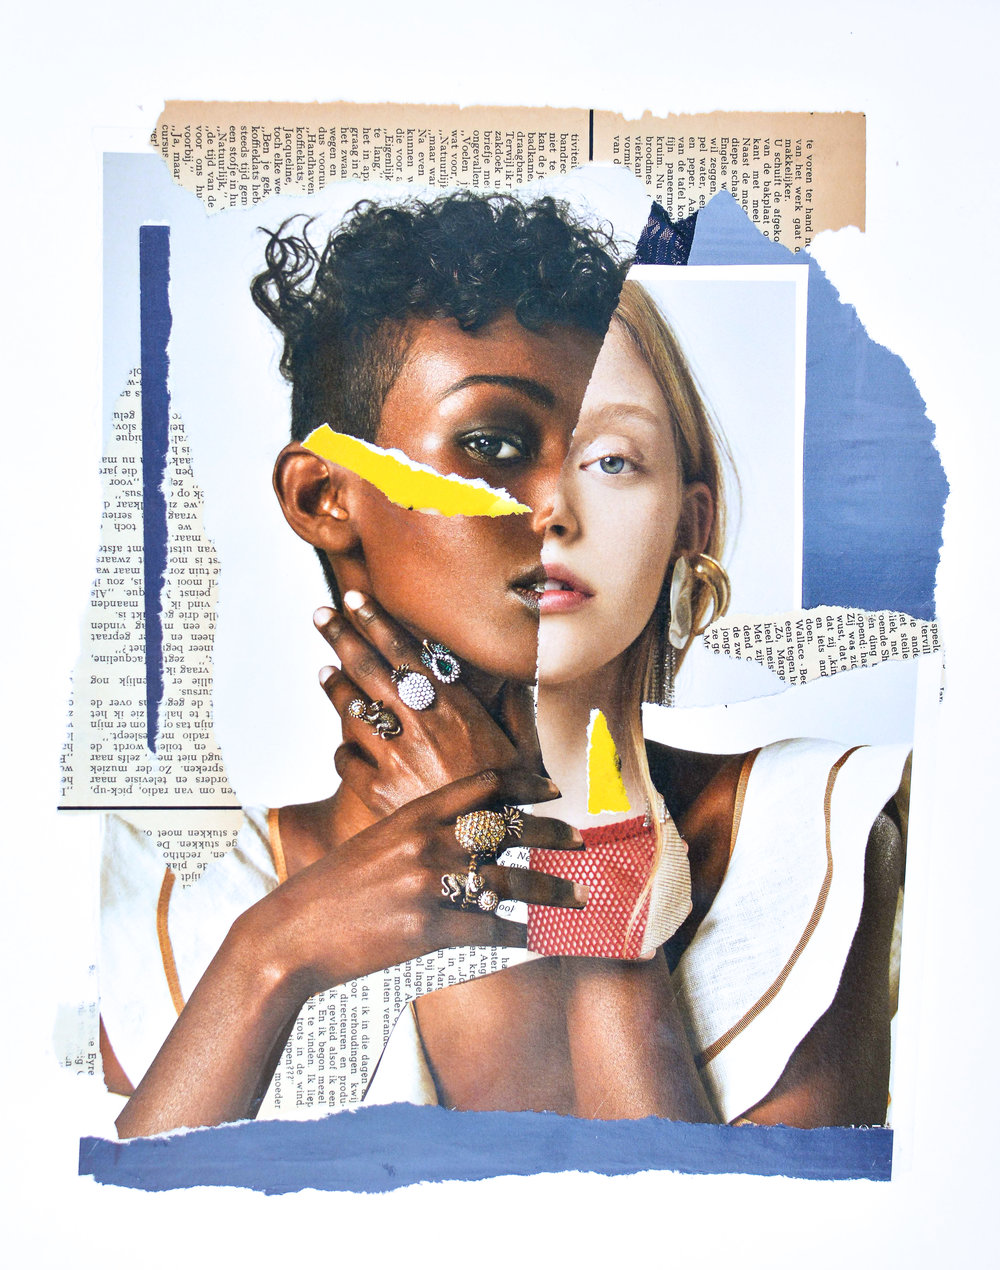 Veerle Symoens Collage Exhibition   Trendland Online Magazine Curating the Web since 2006